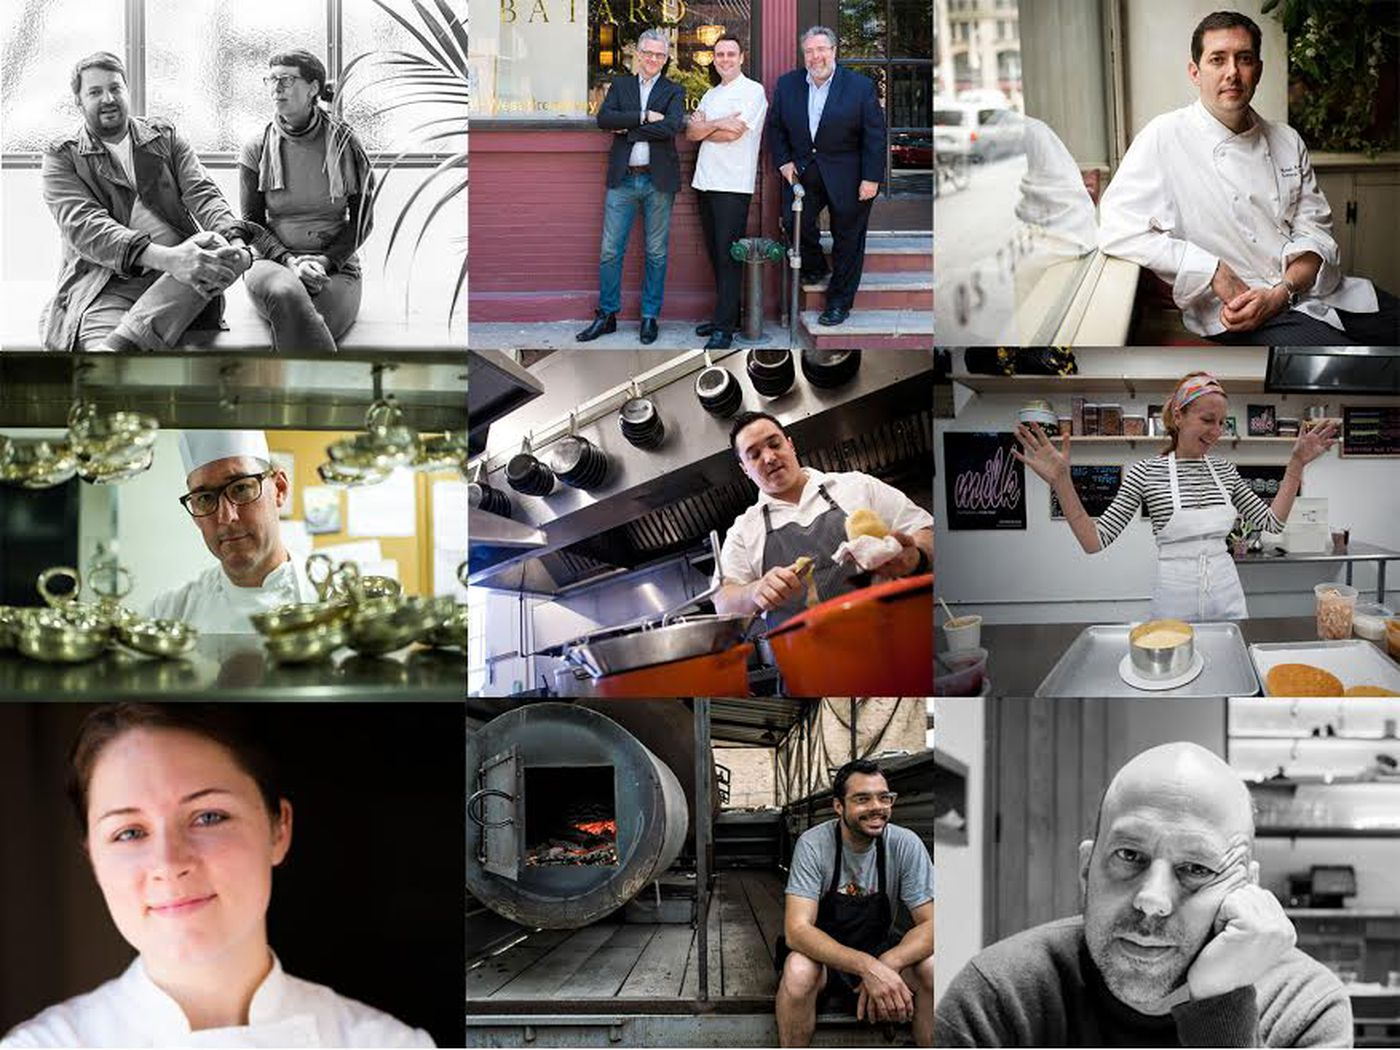 James Beard Awards 2015 Winners You Can Take The Beards Out Of